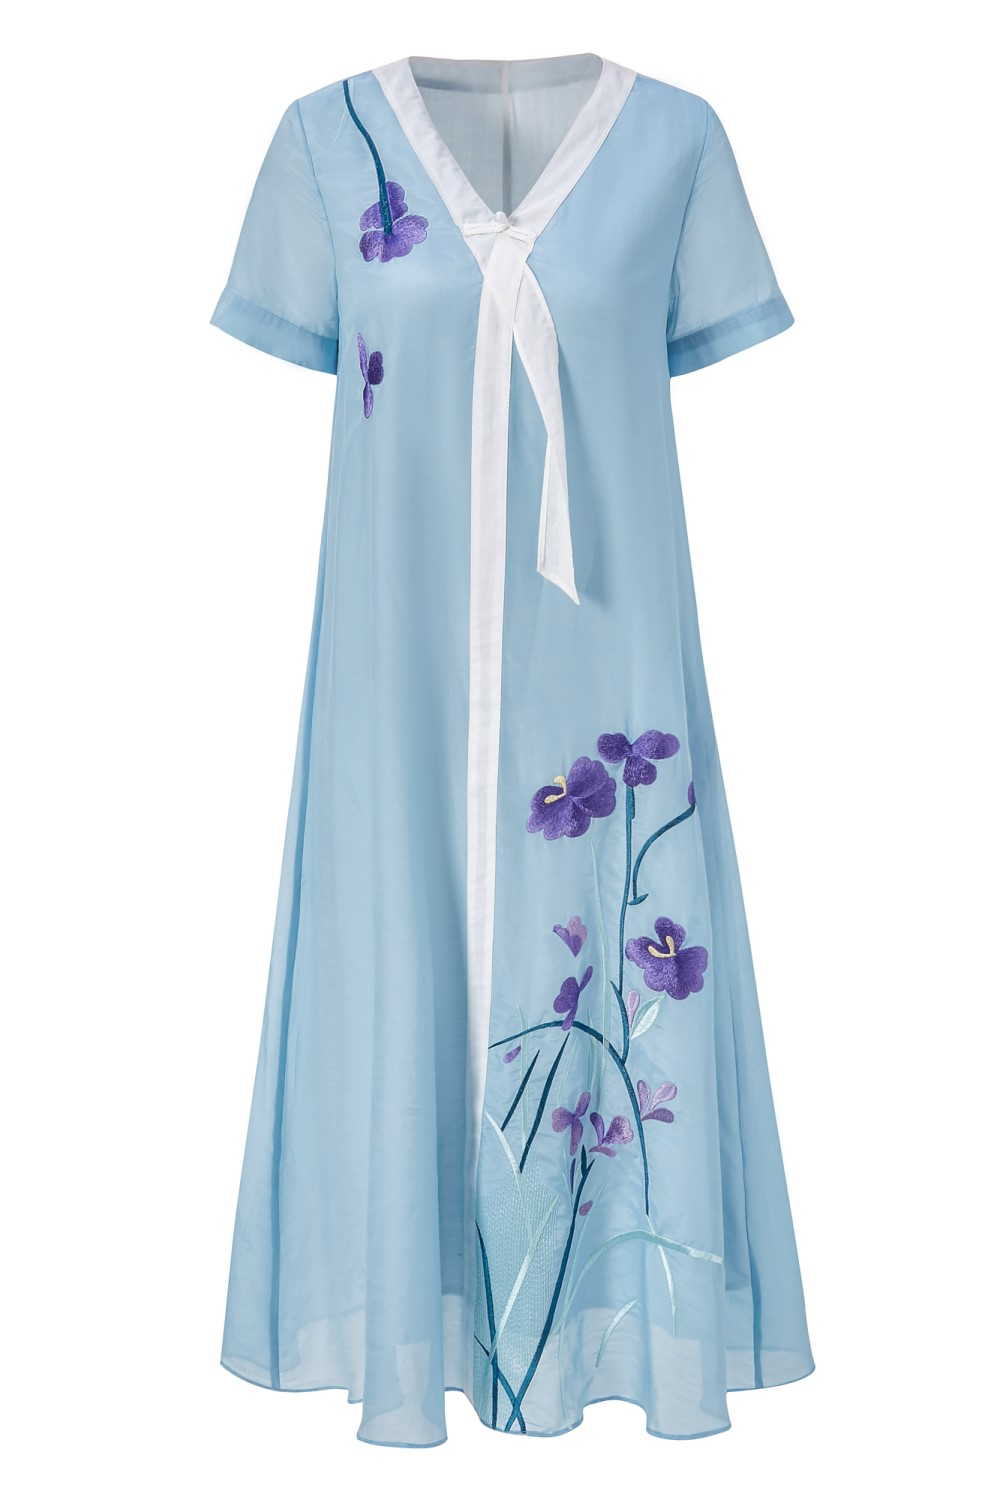 Free shipping Summer original design A Version Chinese style Hit color flower Embroidered big size dress for women - 4